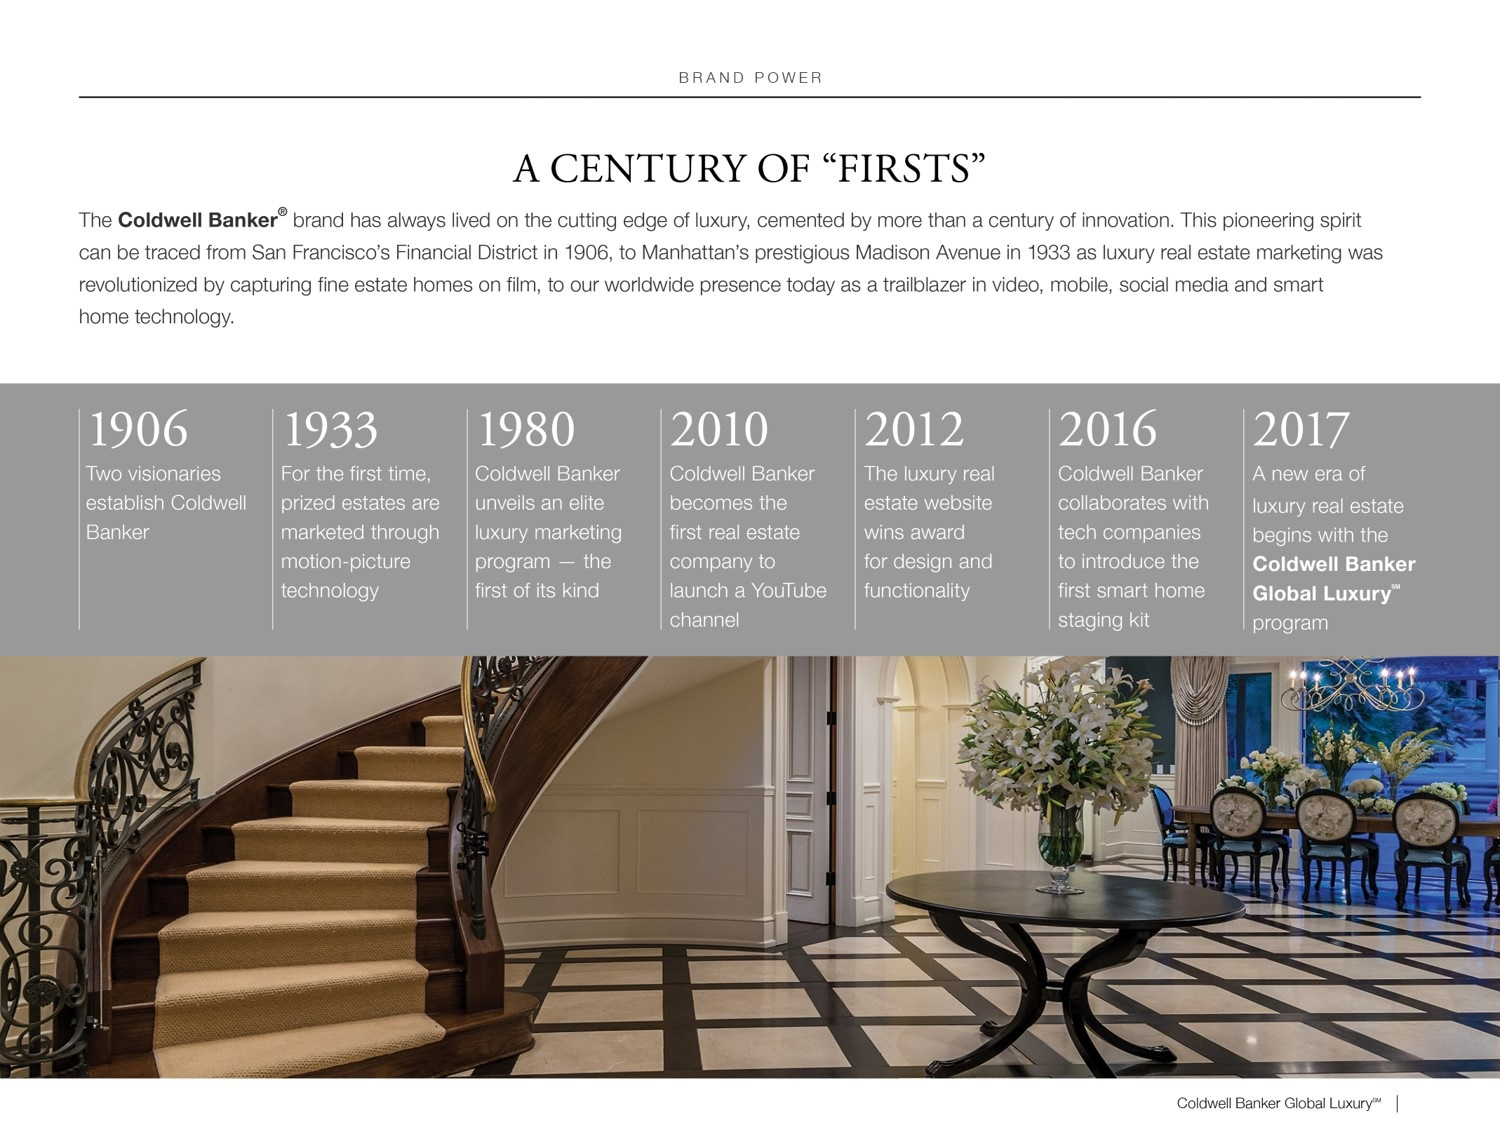 A Century of Firsts